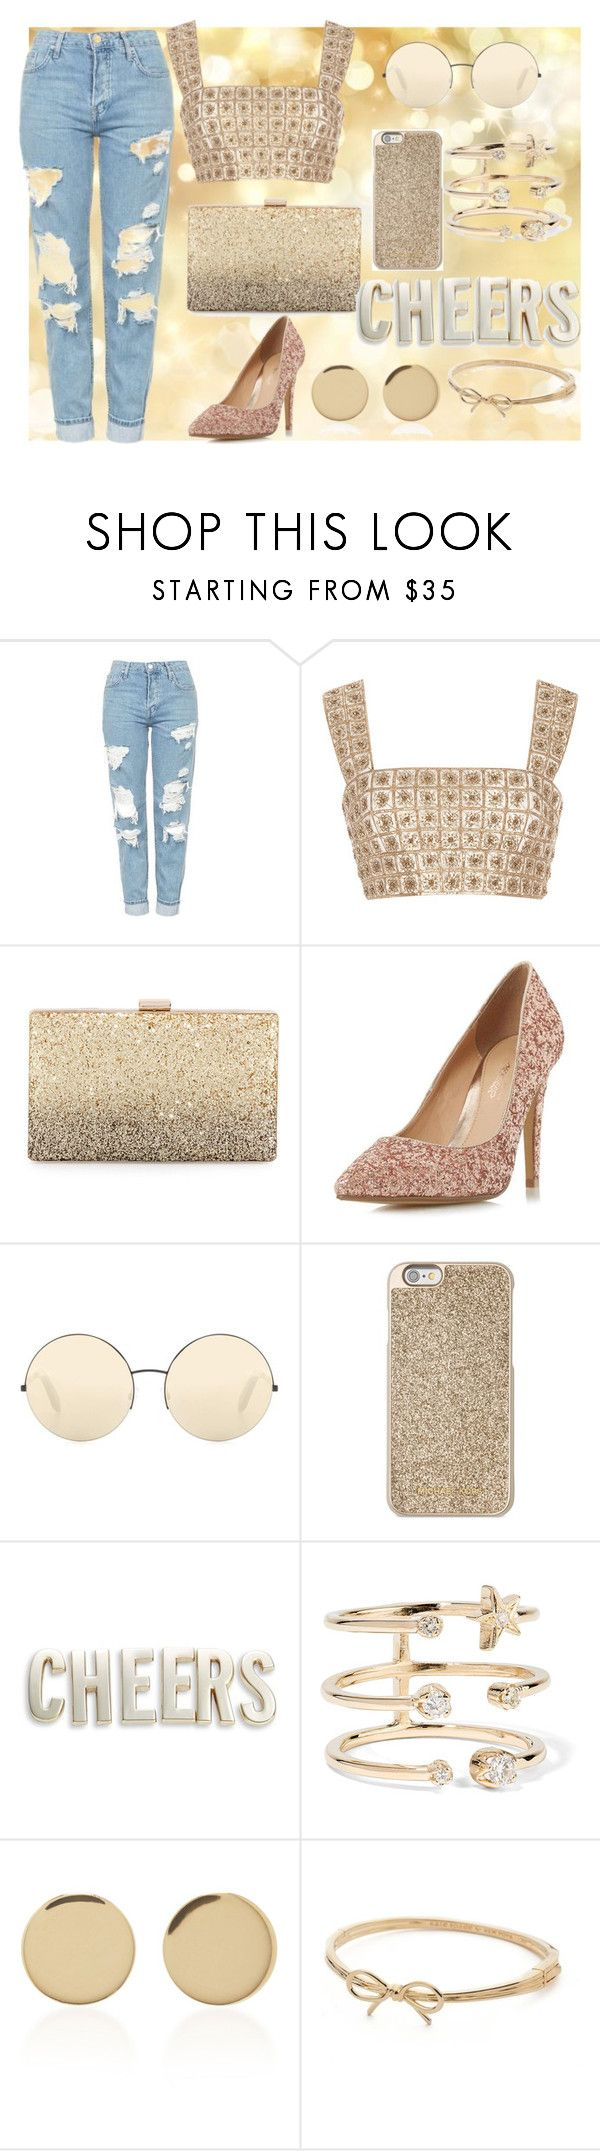 """sunshine like a Gold"" by megi-queen ❤ liked on Polyvore featuring Topshop, Oscar de la Renta, Neiman Marcus, Head Over Heels by Dune, Victoria Beckham, Michael Kors, Kate Spade, Andrea Fohrman and Magdalena Frackowiak"